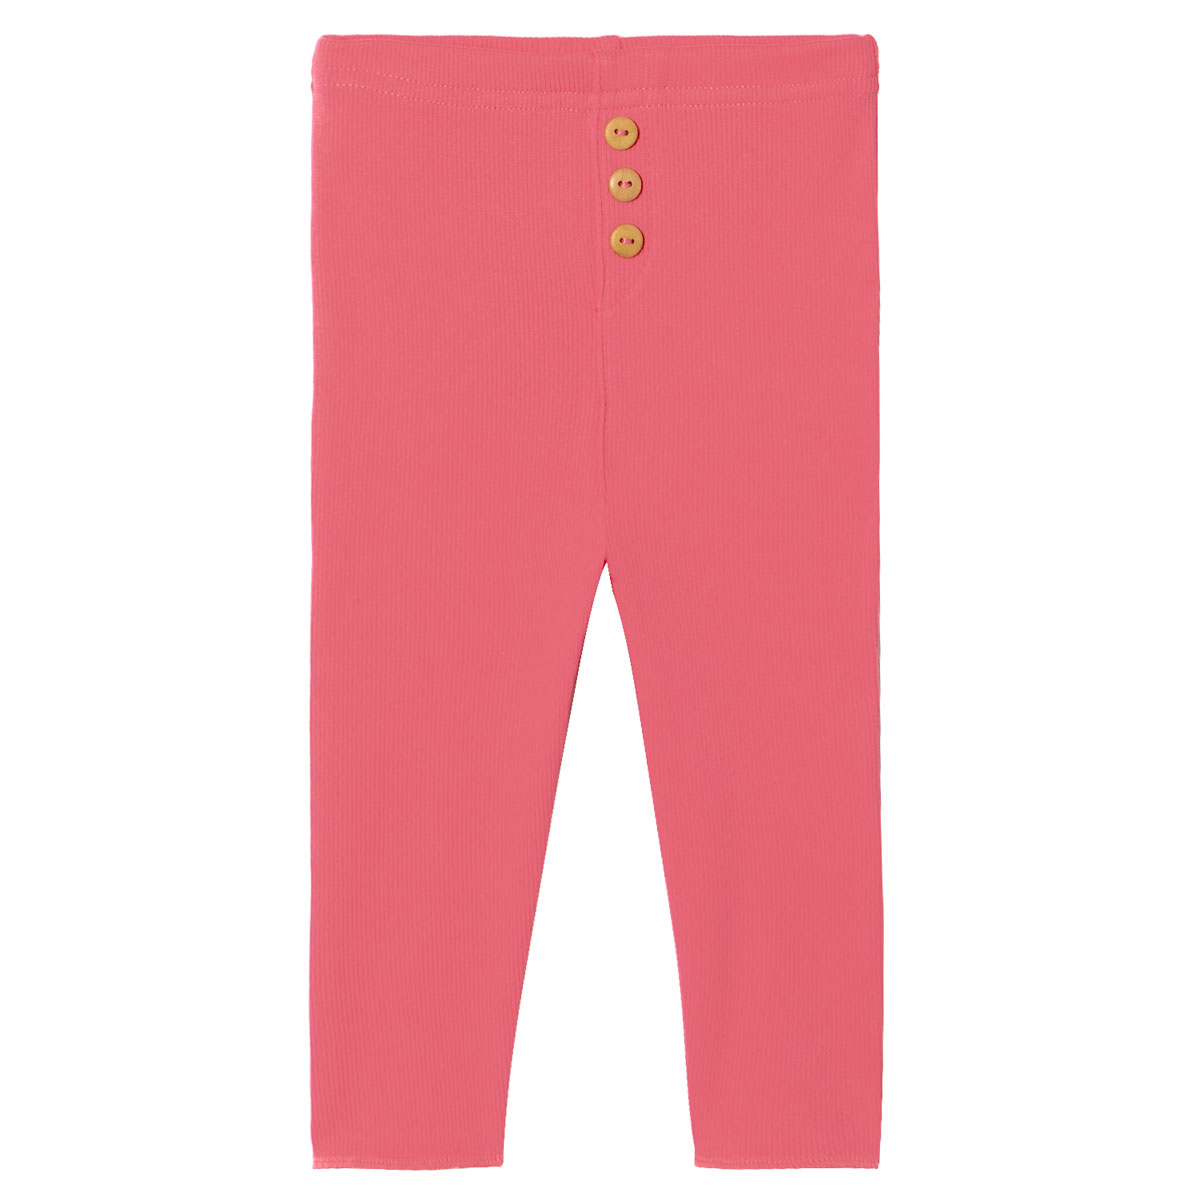 Ensemble bébé fille tunique + legging Malaga bas